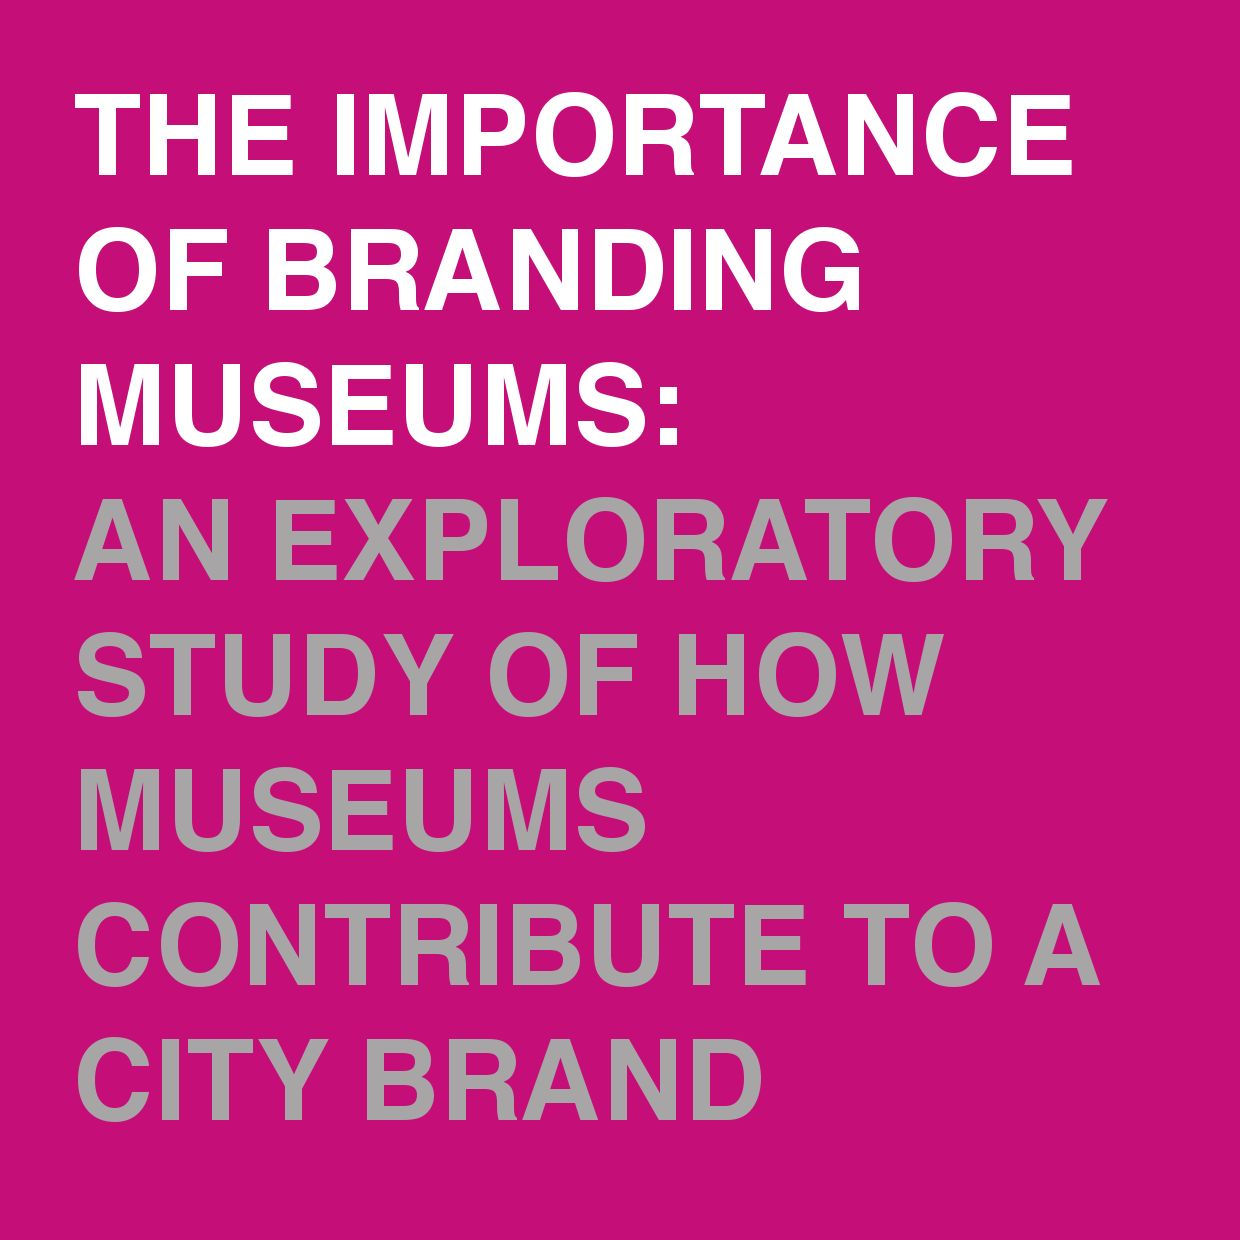 The importance of branding museums and how museums contribute to a city brand